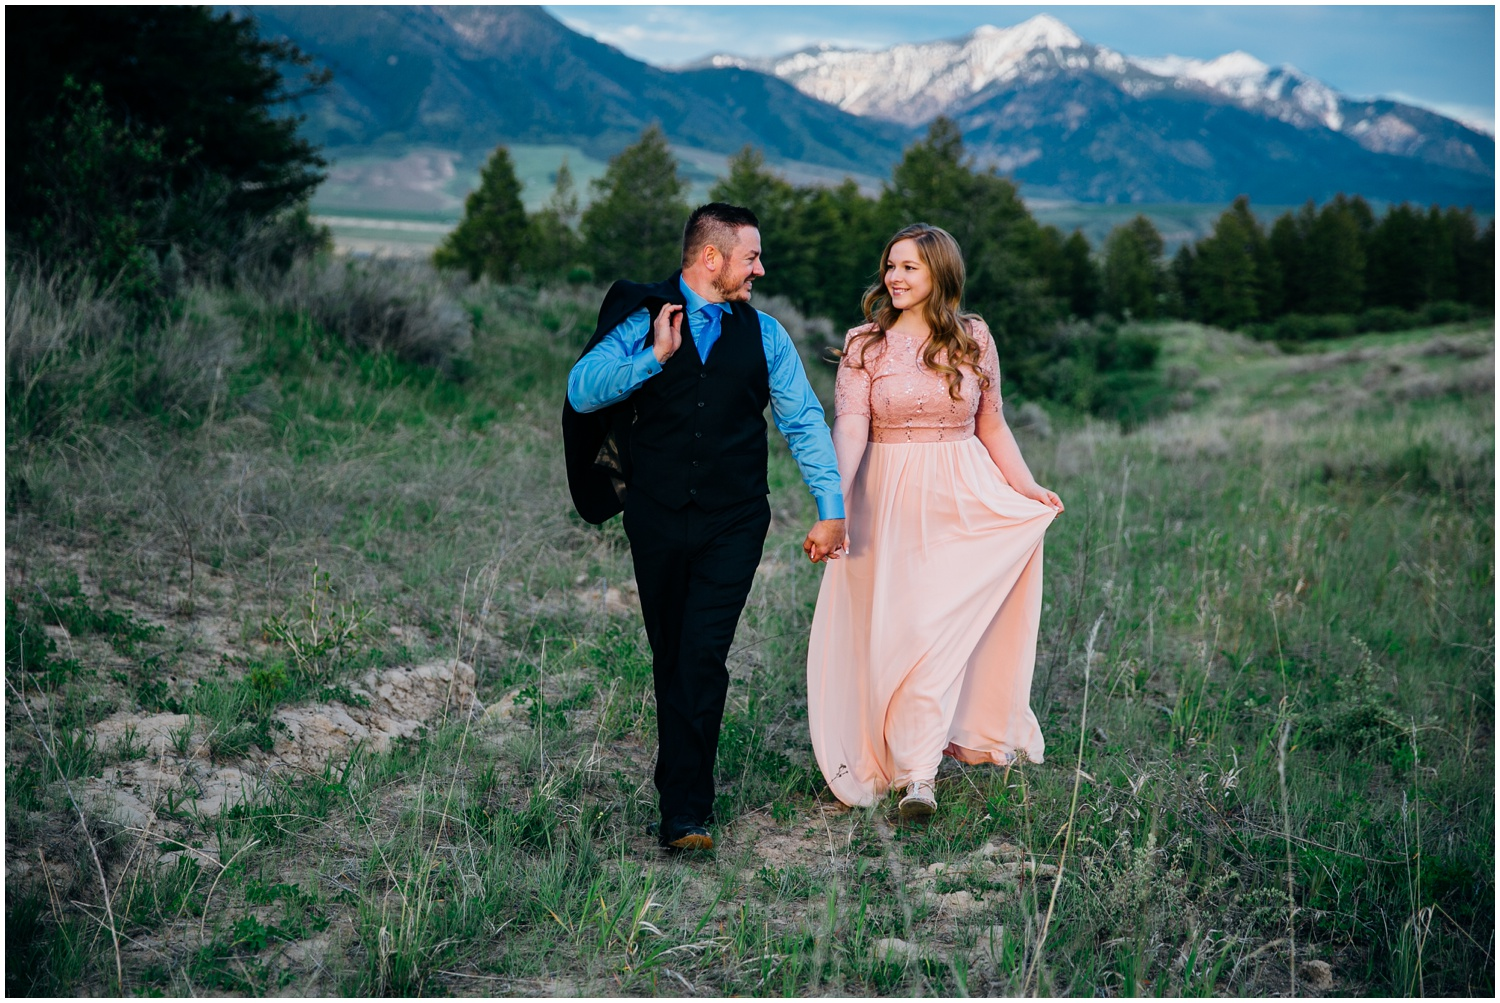 swan-valley-idaho-engagements-colorado-wyoming-wedding-photographer_0570.jpg